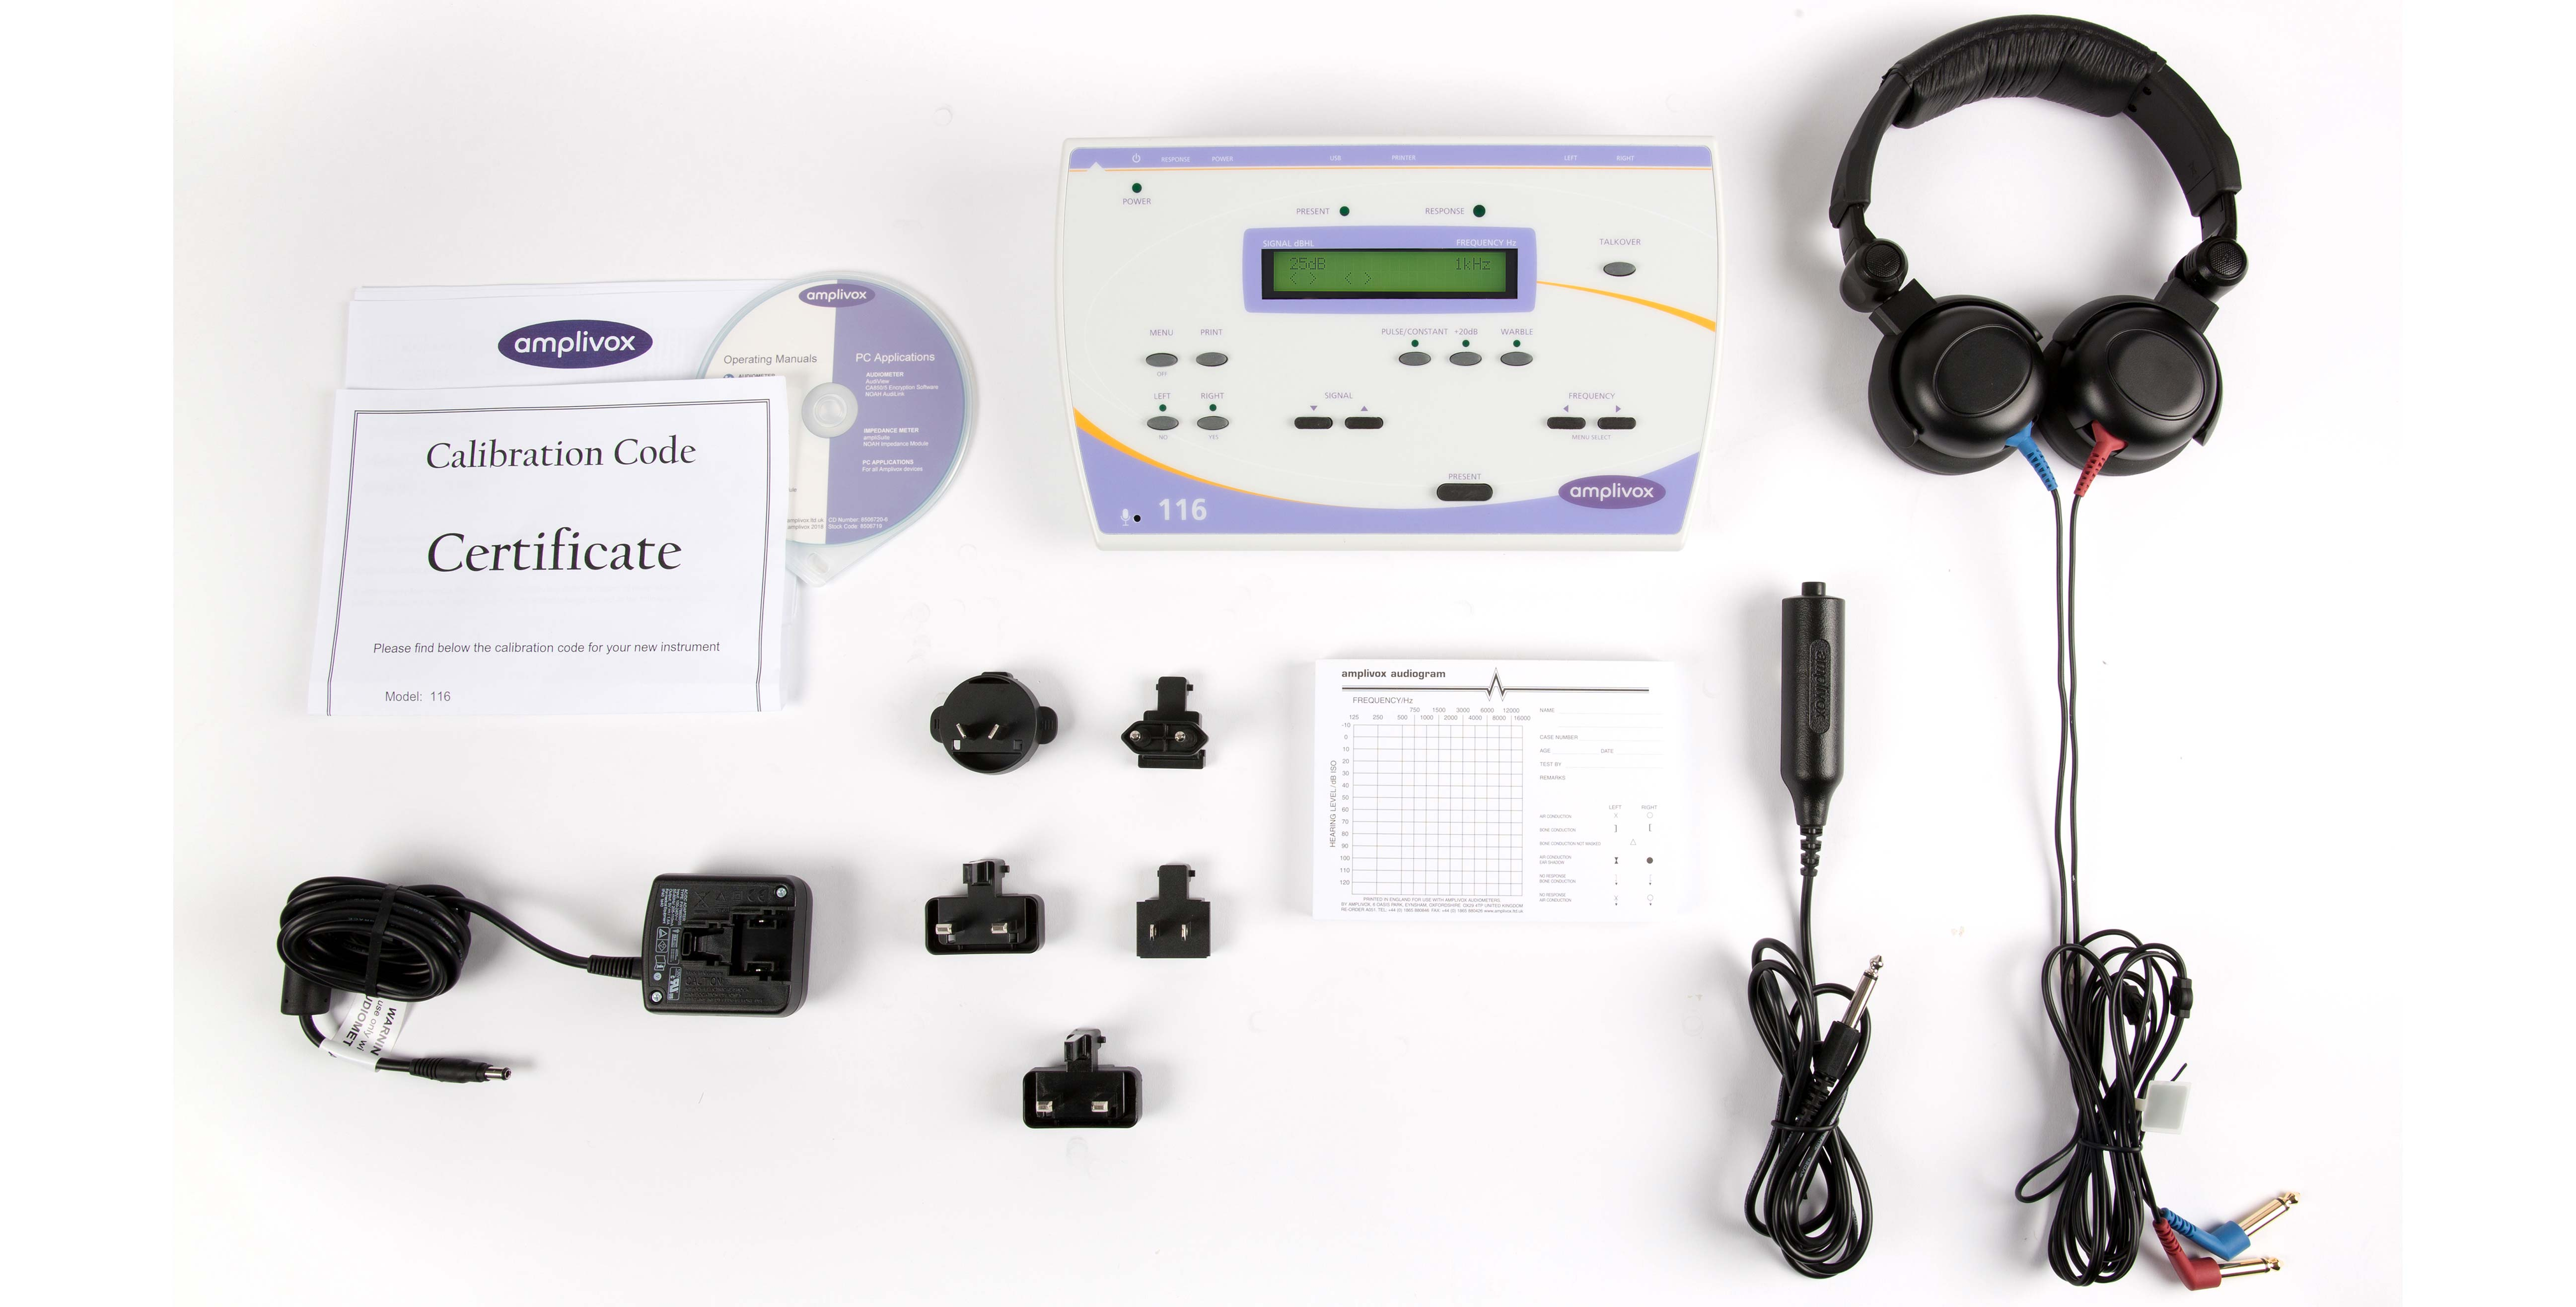 amplivox_116_audiometer_large_everything_included